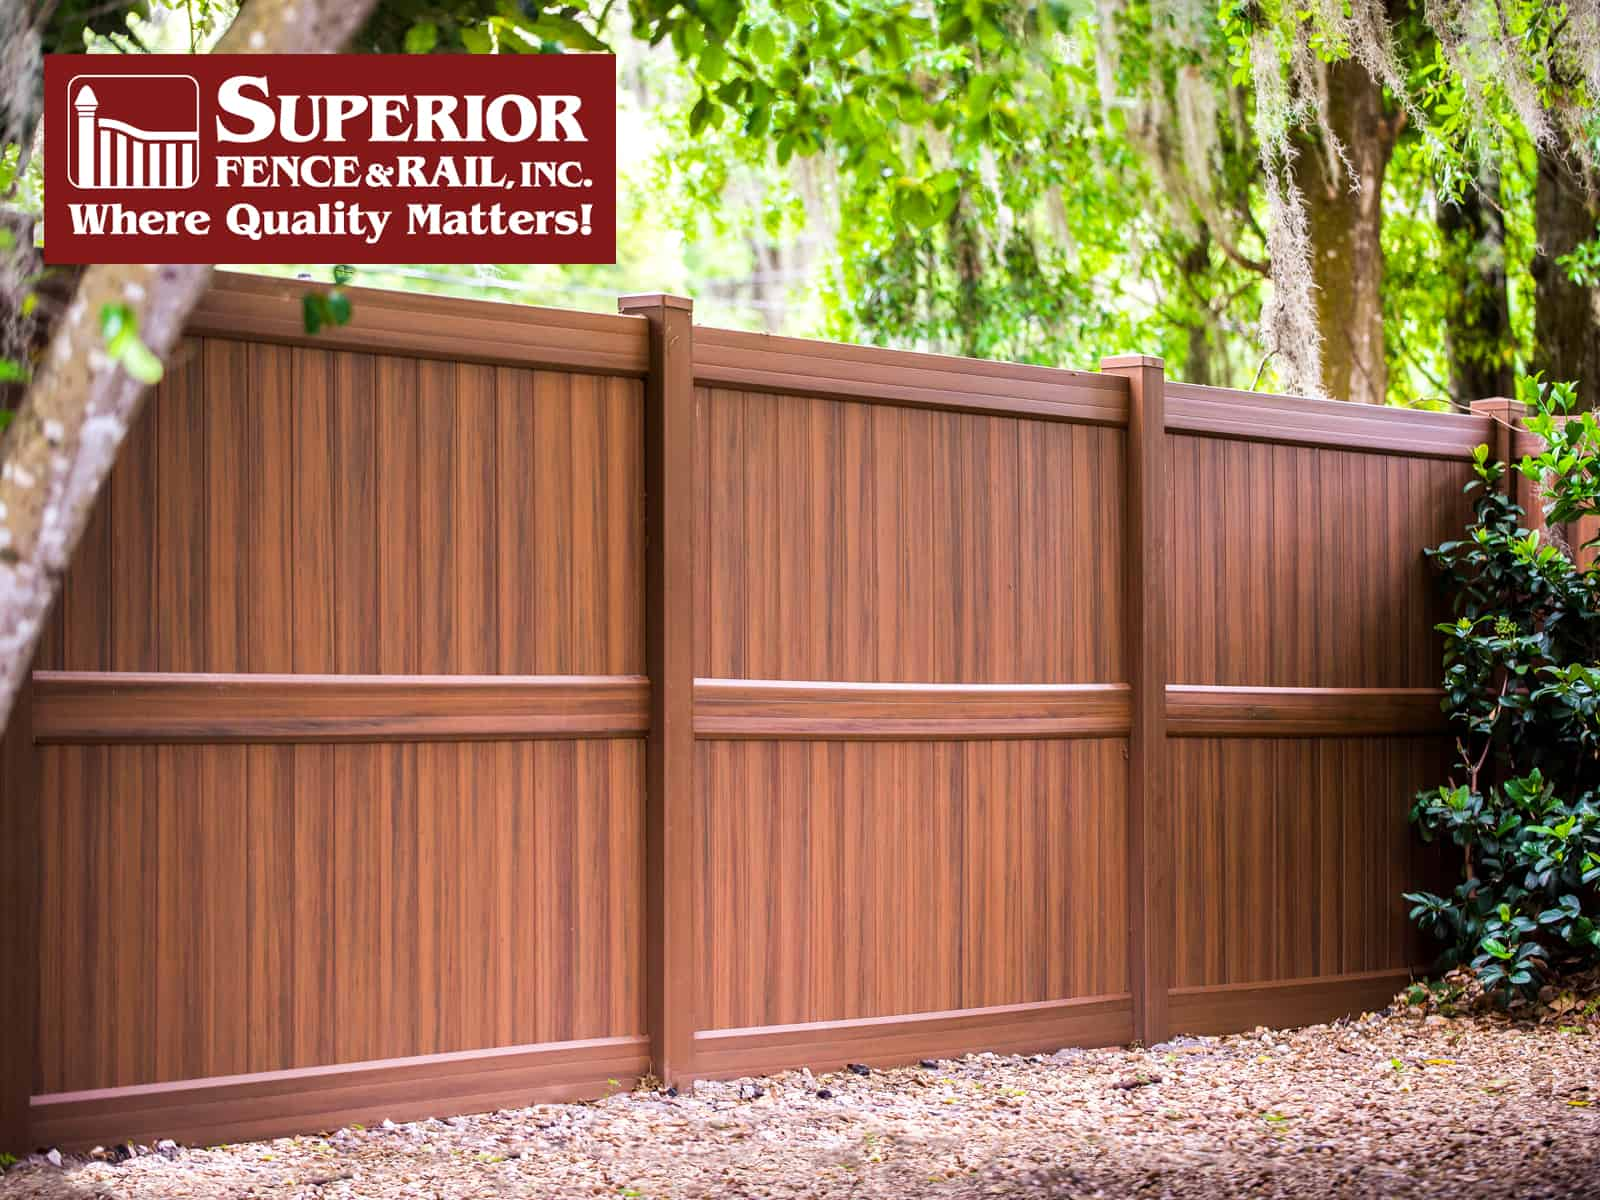 Papillion fence company contractor